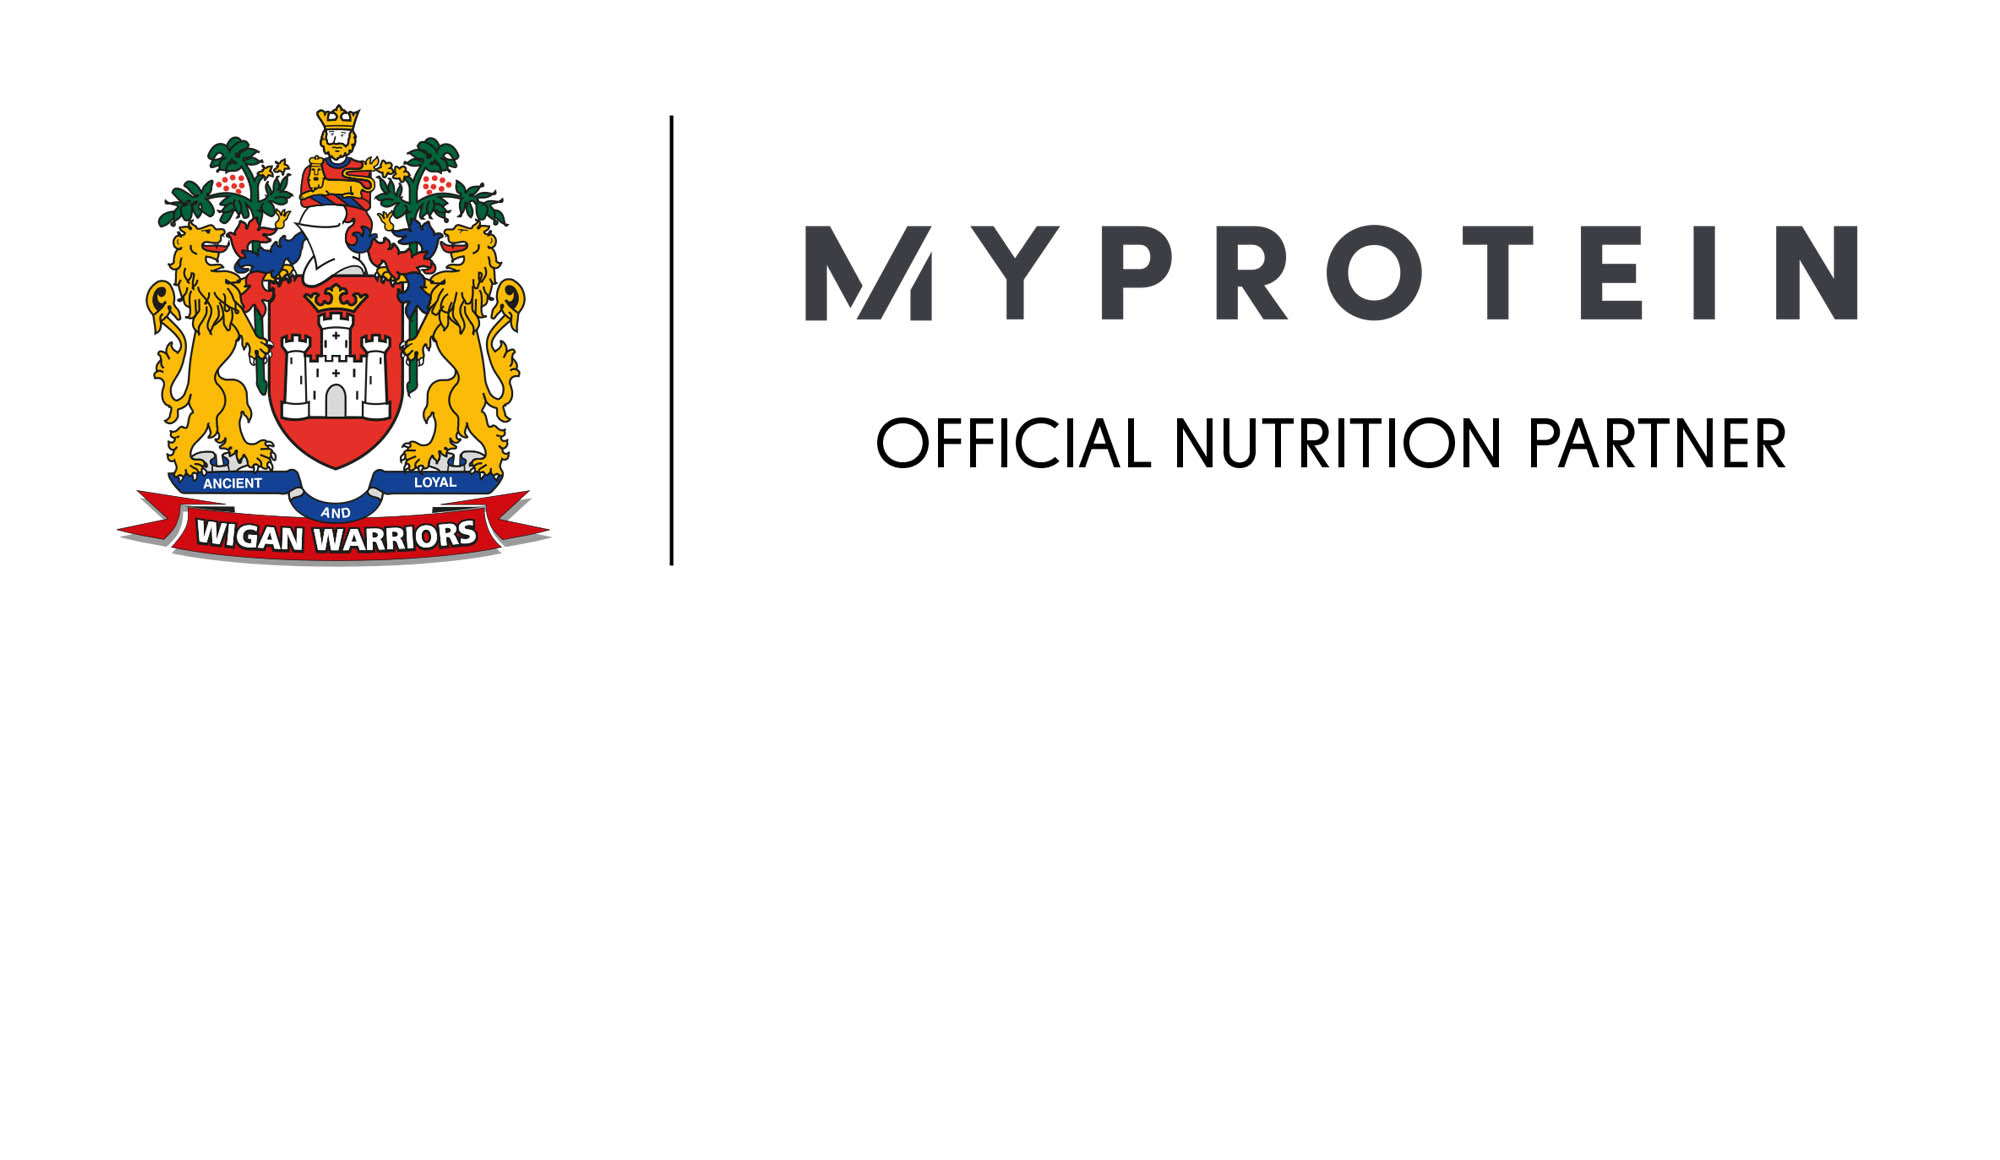 Wigan Warriors fuelled by Myprotein